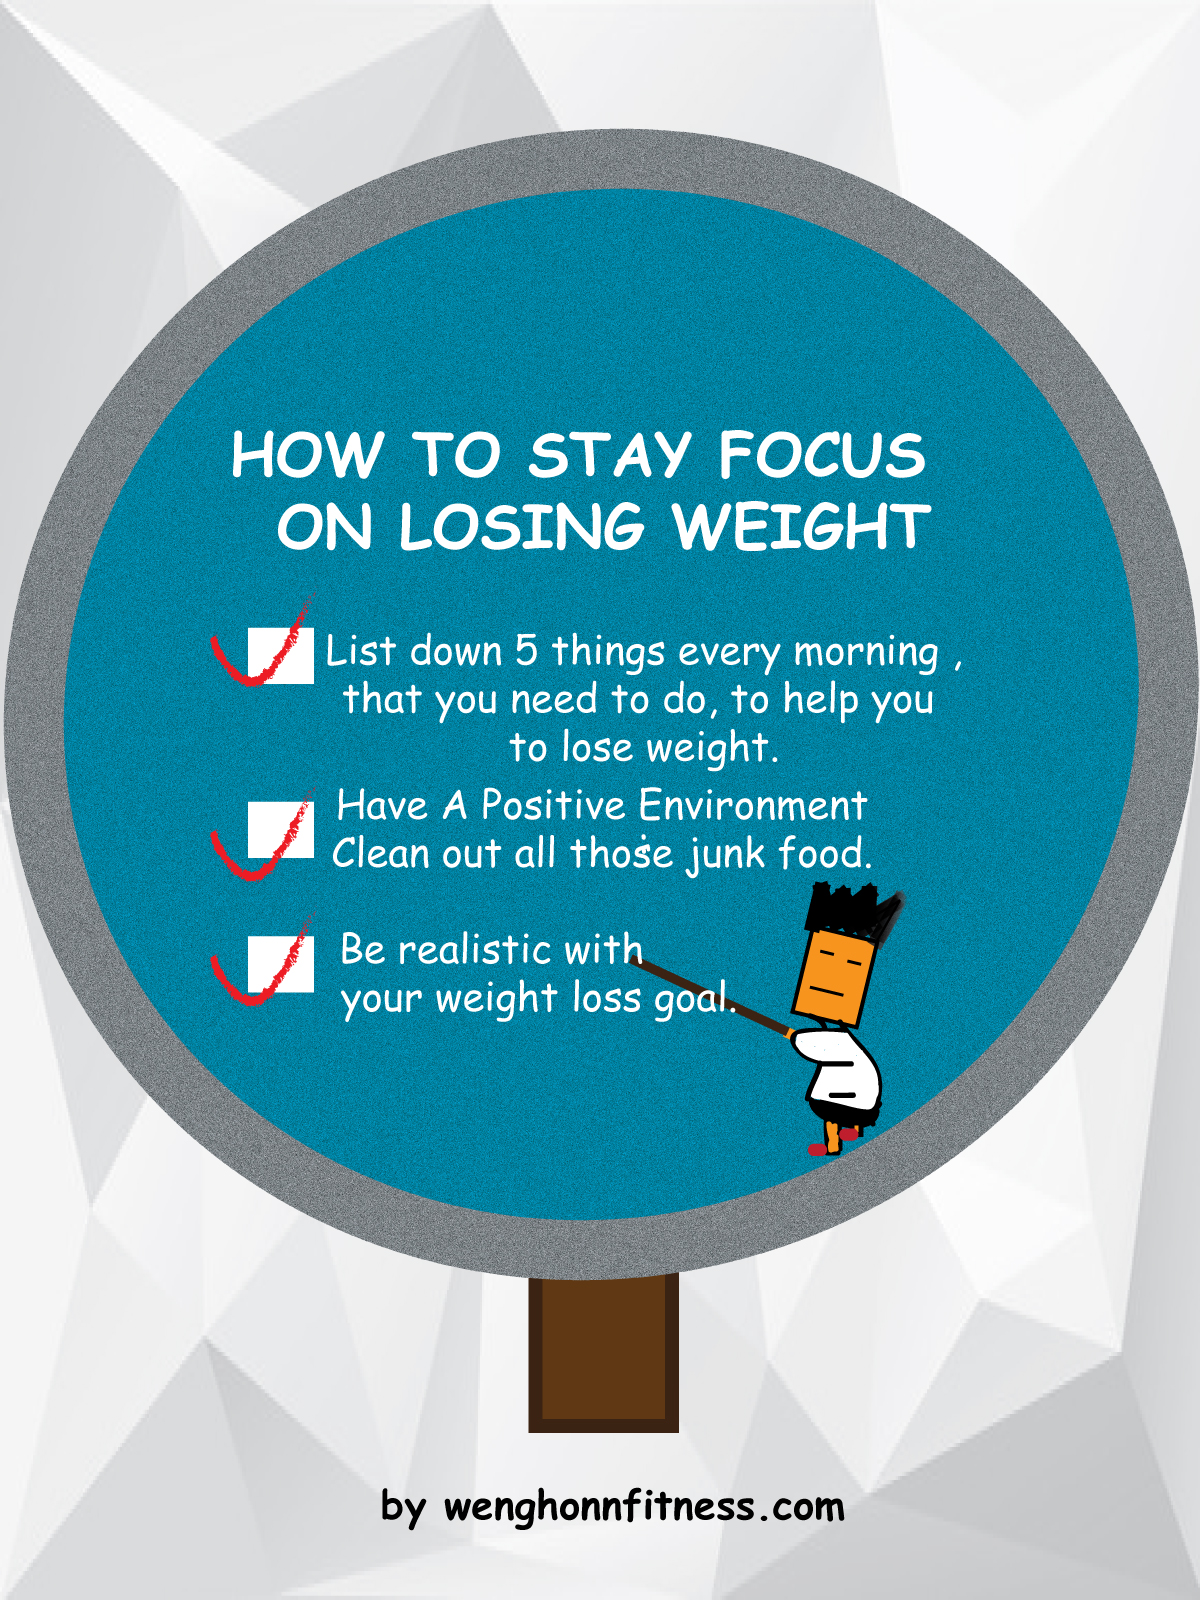 Use below 3 tips to laser focus and burn those nasty fat.